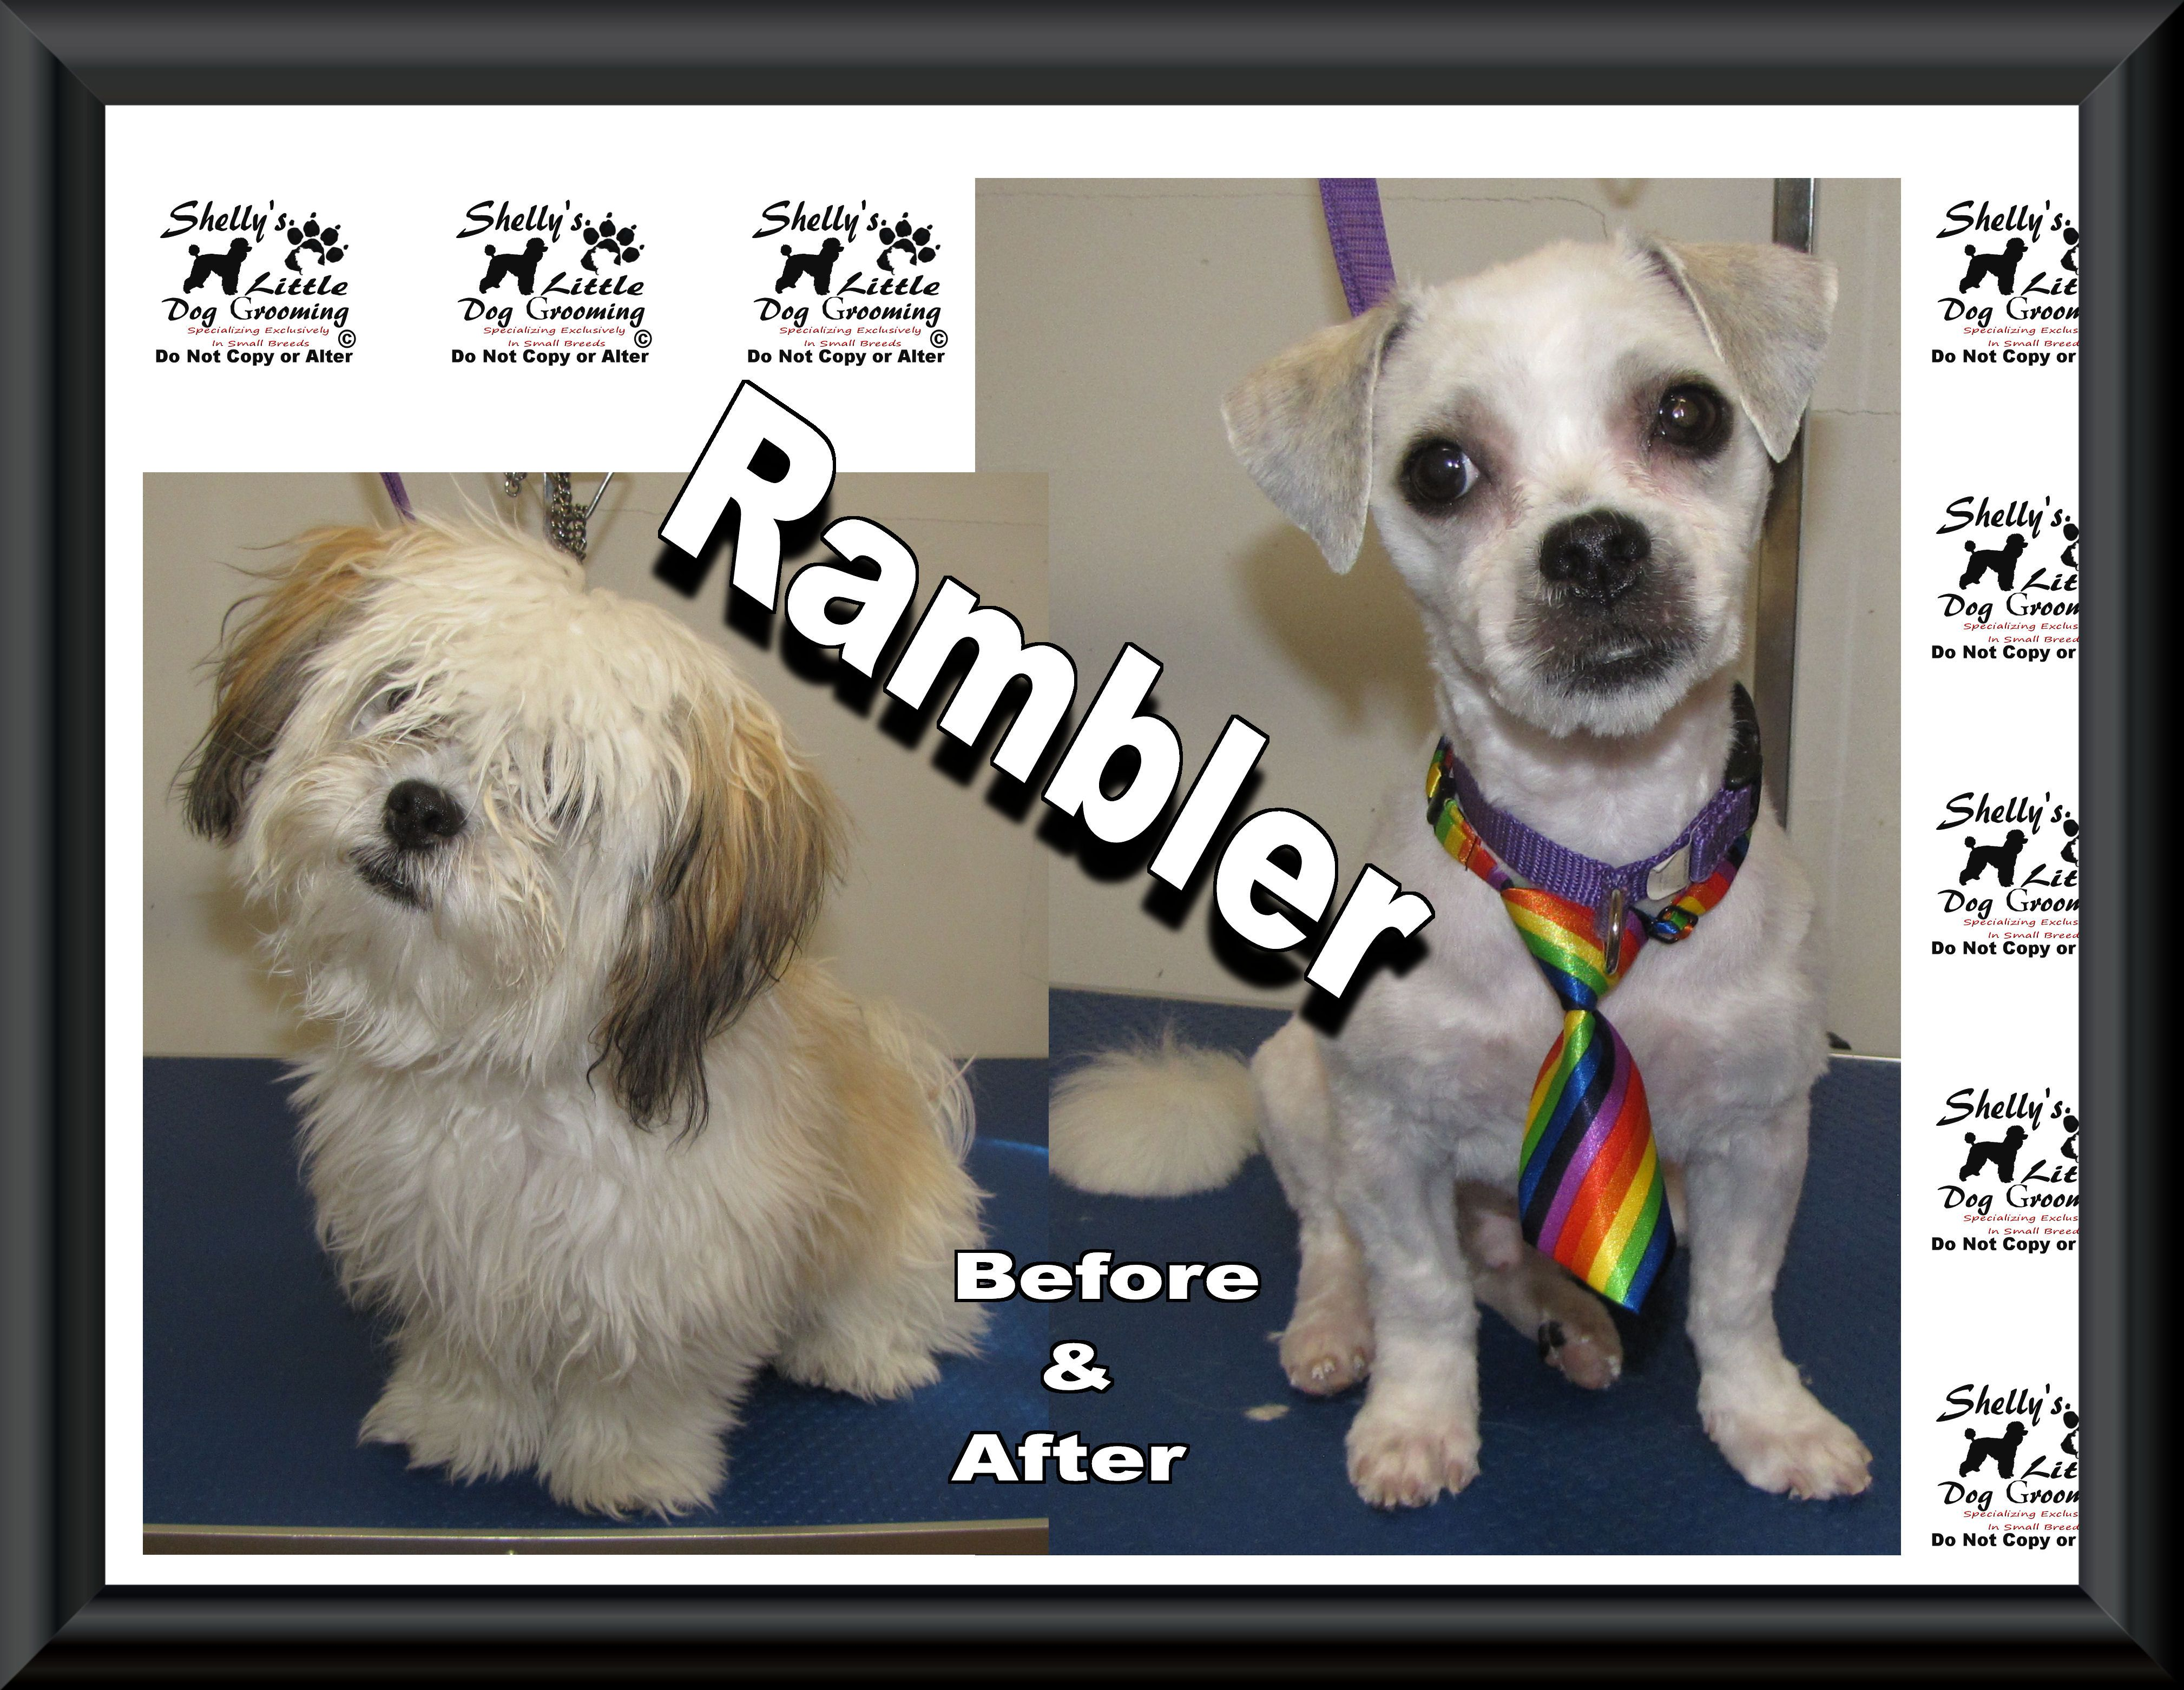 A Big Welcome To Rambler His 1st Time Here And He Did